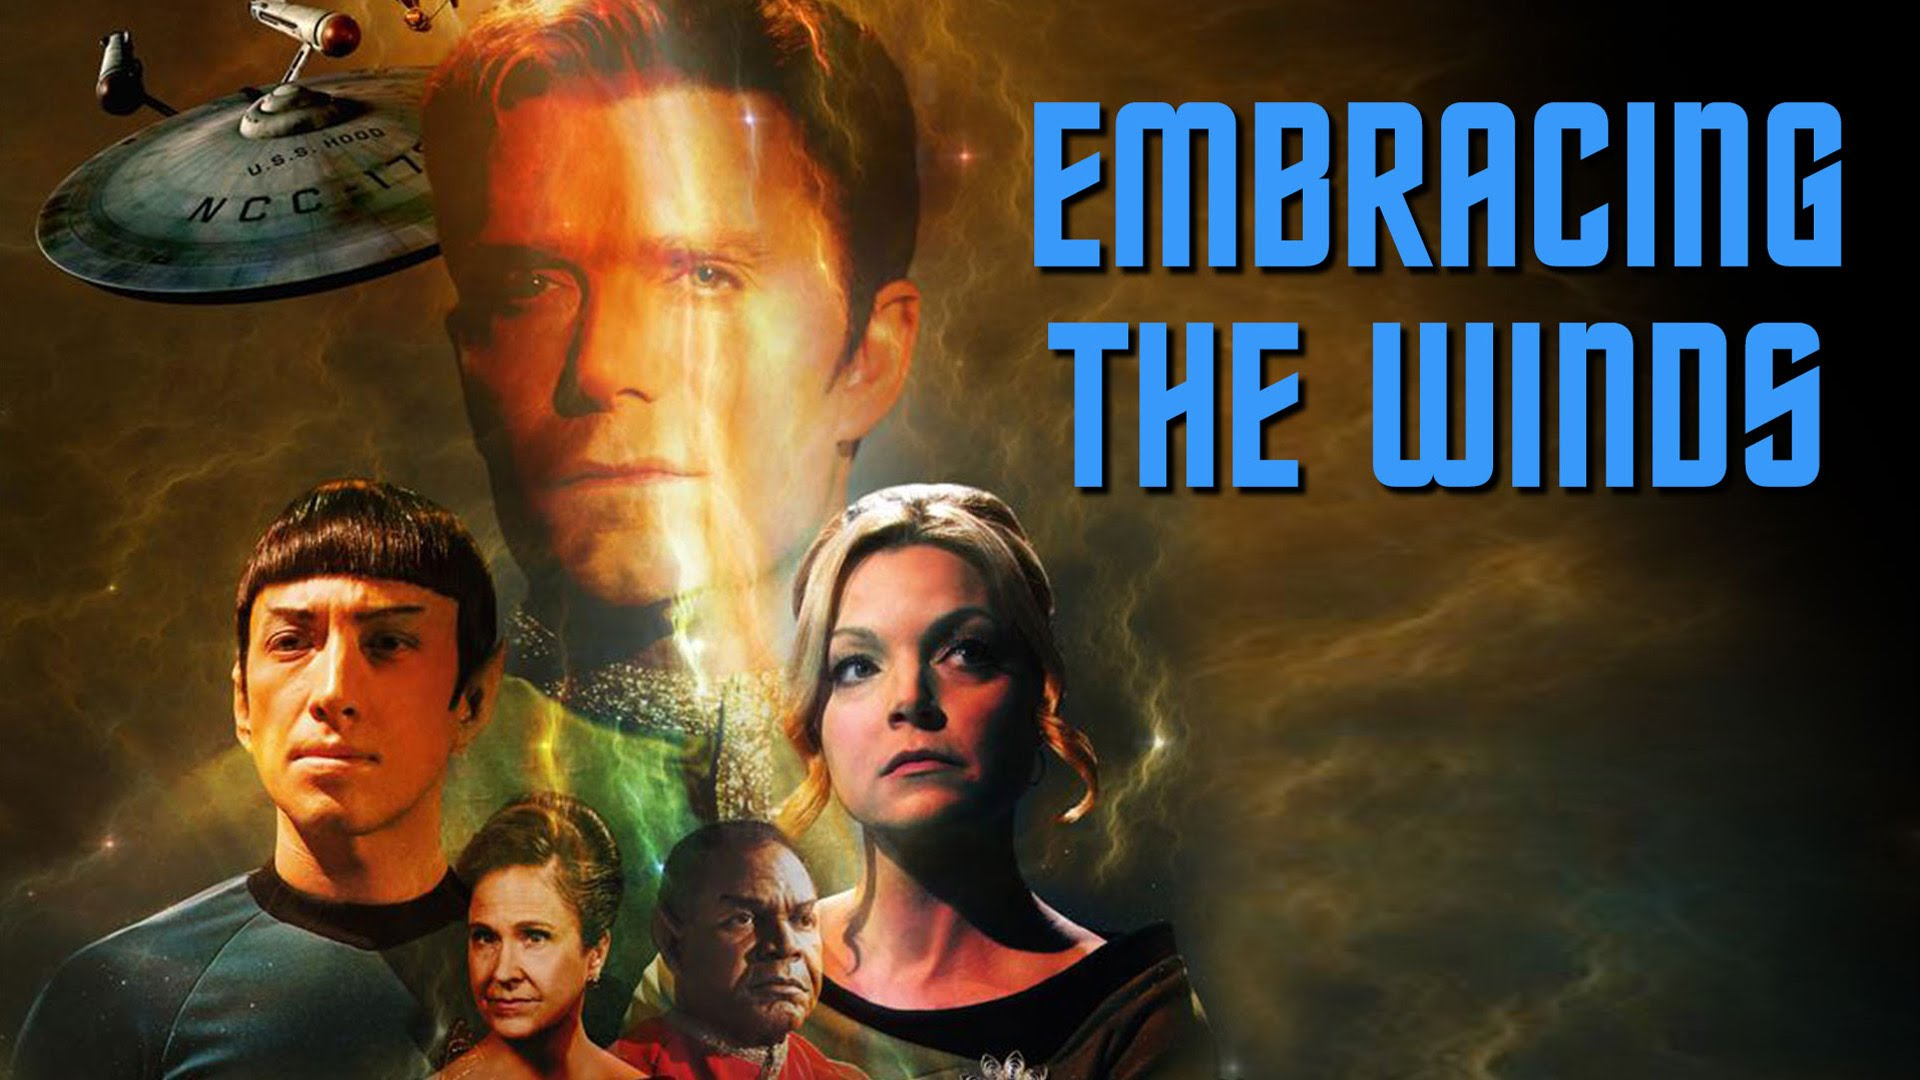 STAR TREK CONTINUES – EMBRACING THE WINDS